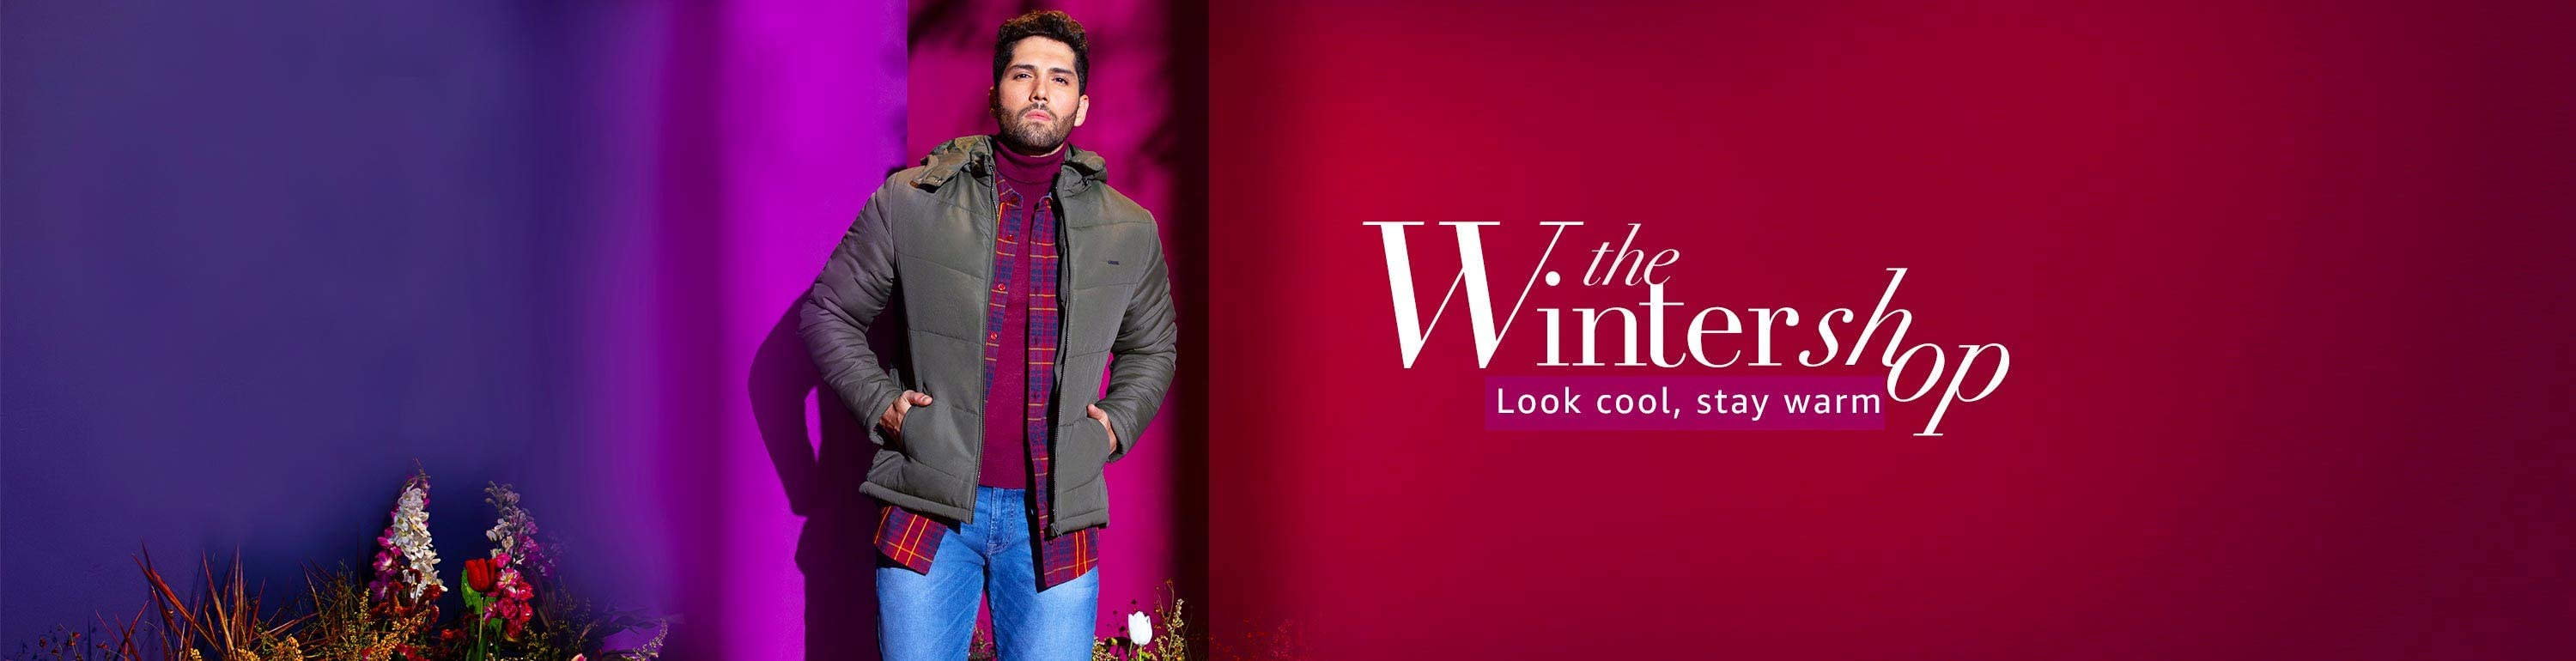 THE WINTER SHOP   Upto 70% Off On Men's Clothing